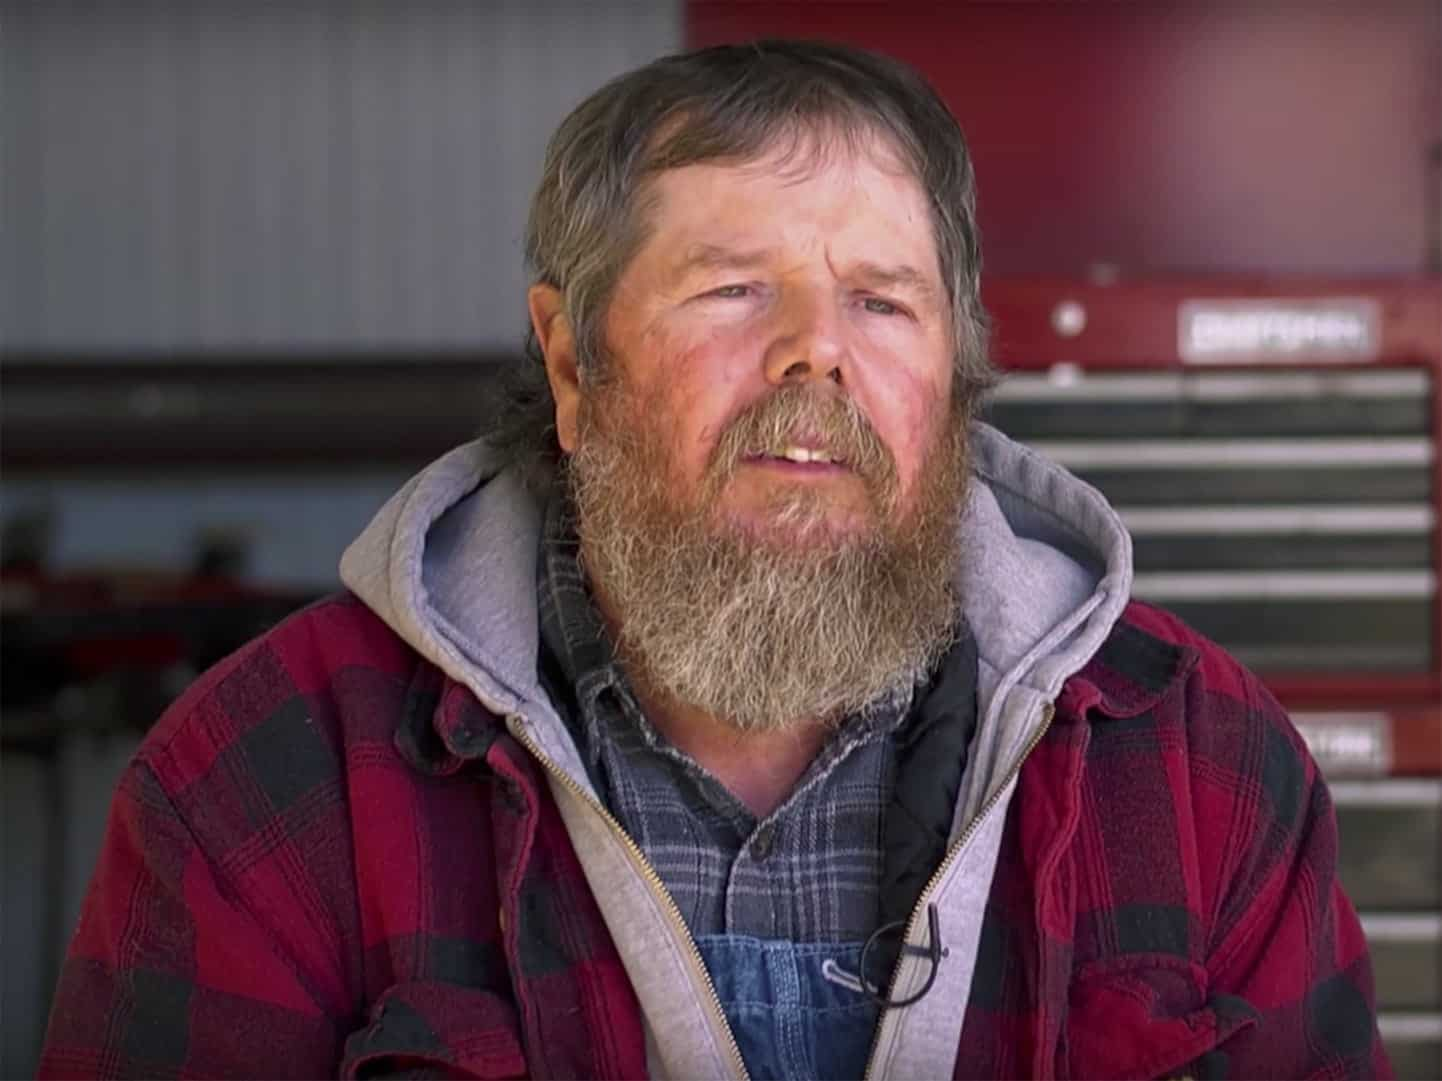 Darvin Bentlage is a fourth-generation farmer from Golden City, Missouri. He was uninsured before the ACA and featured in a video from the Department of Health and Human Services supporting the law. (Department of Health and Human Services website)